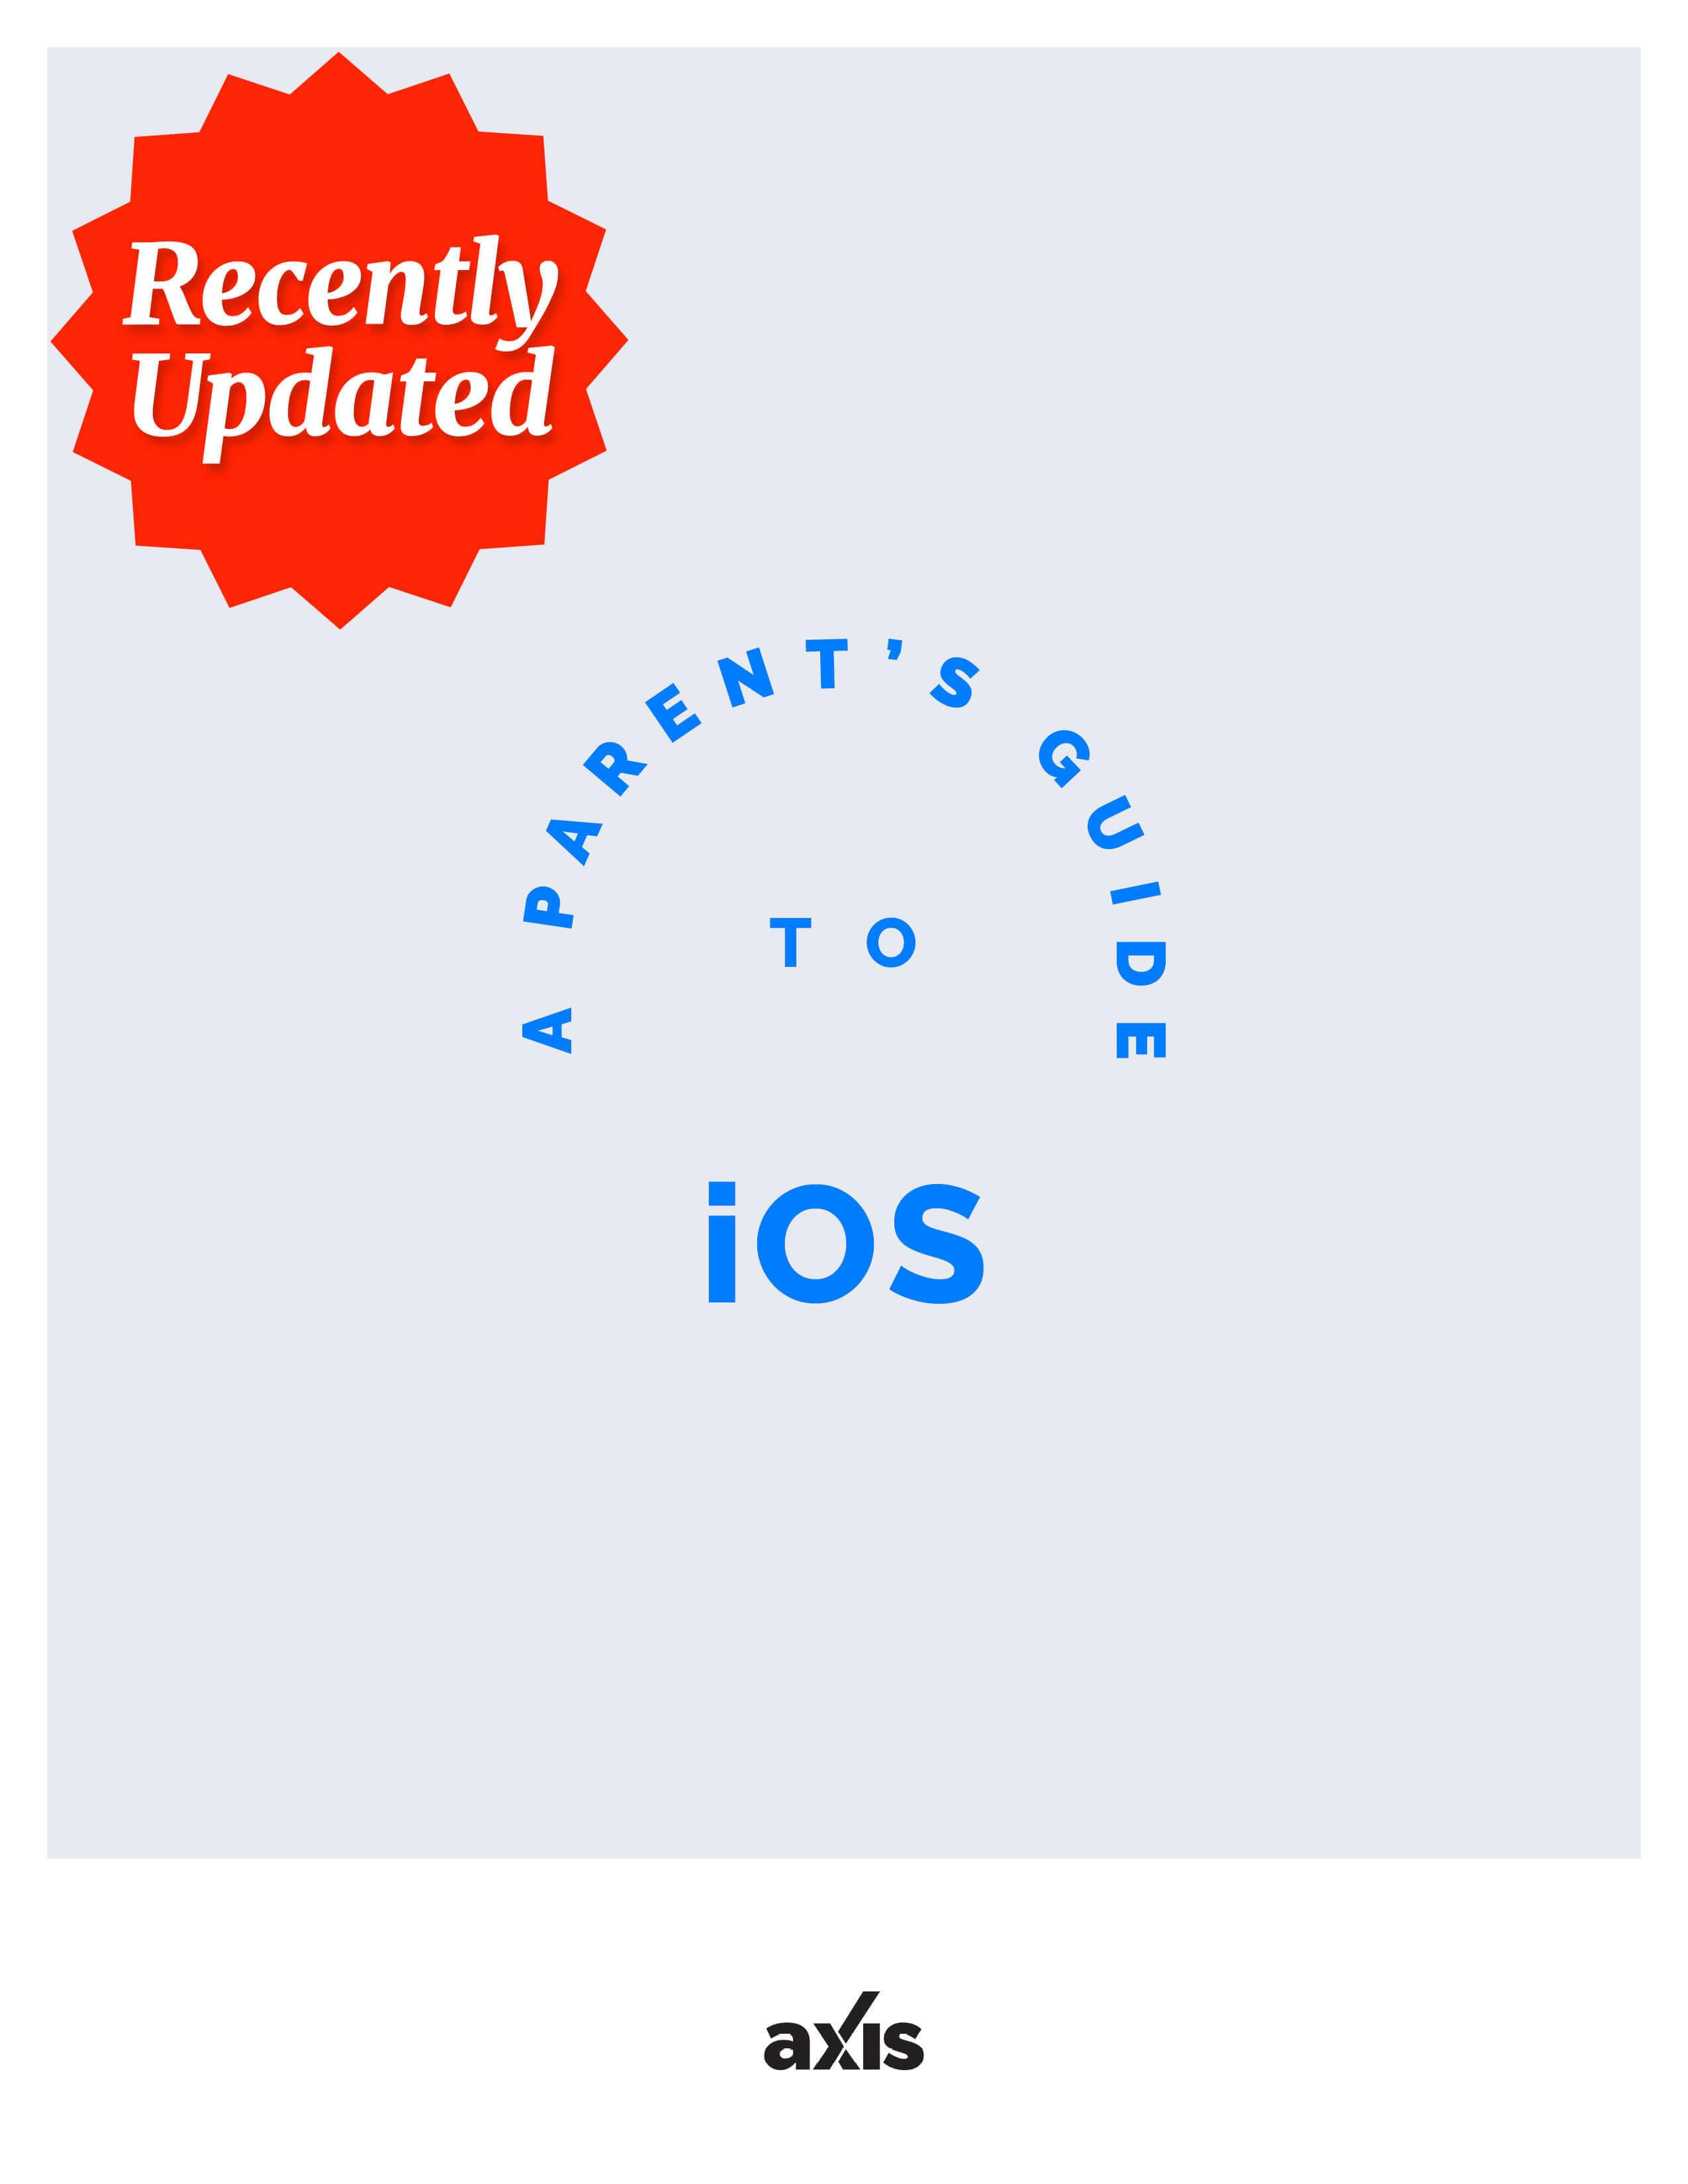 iOS Product Title